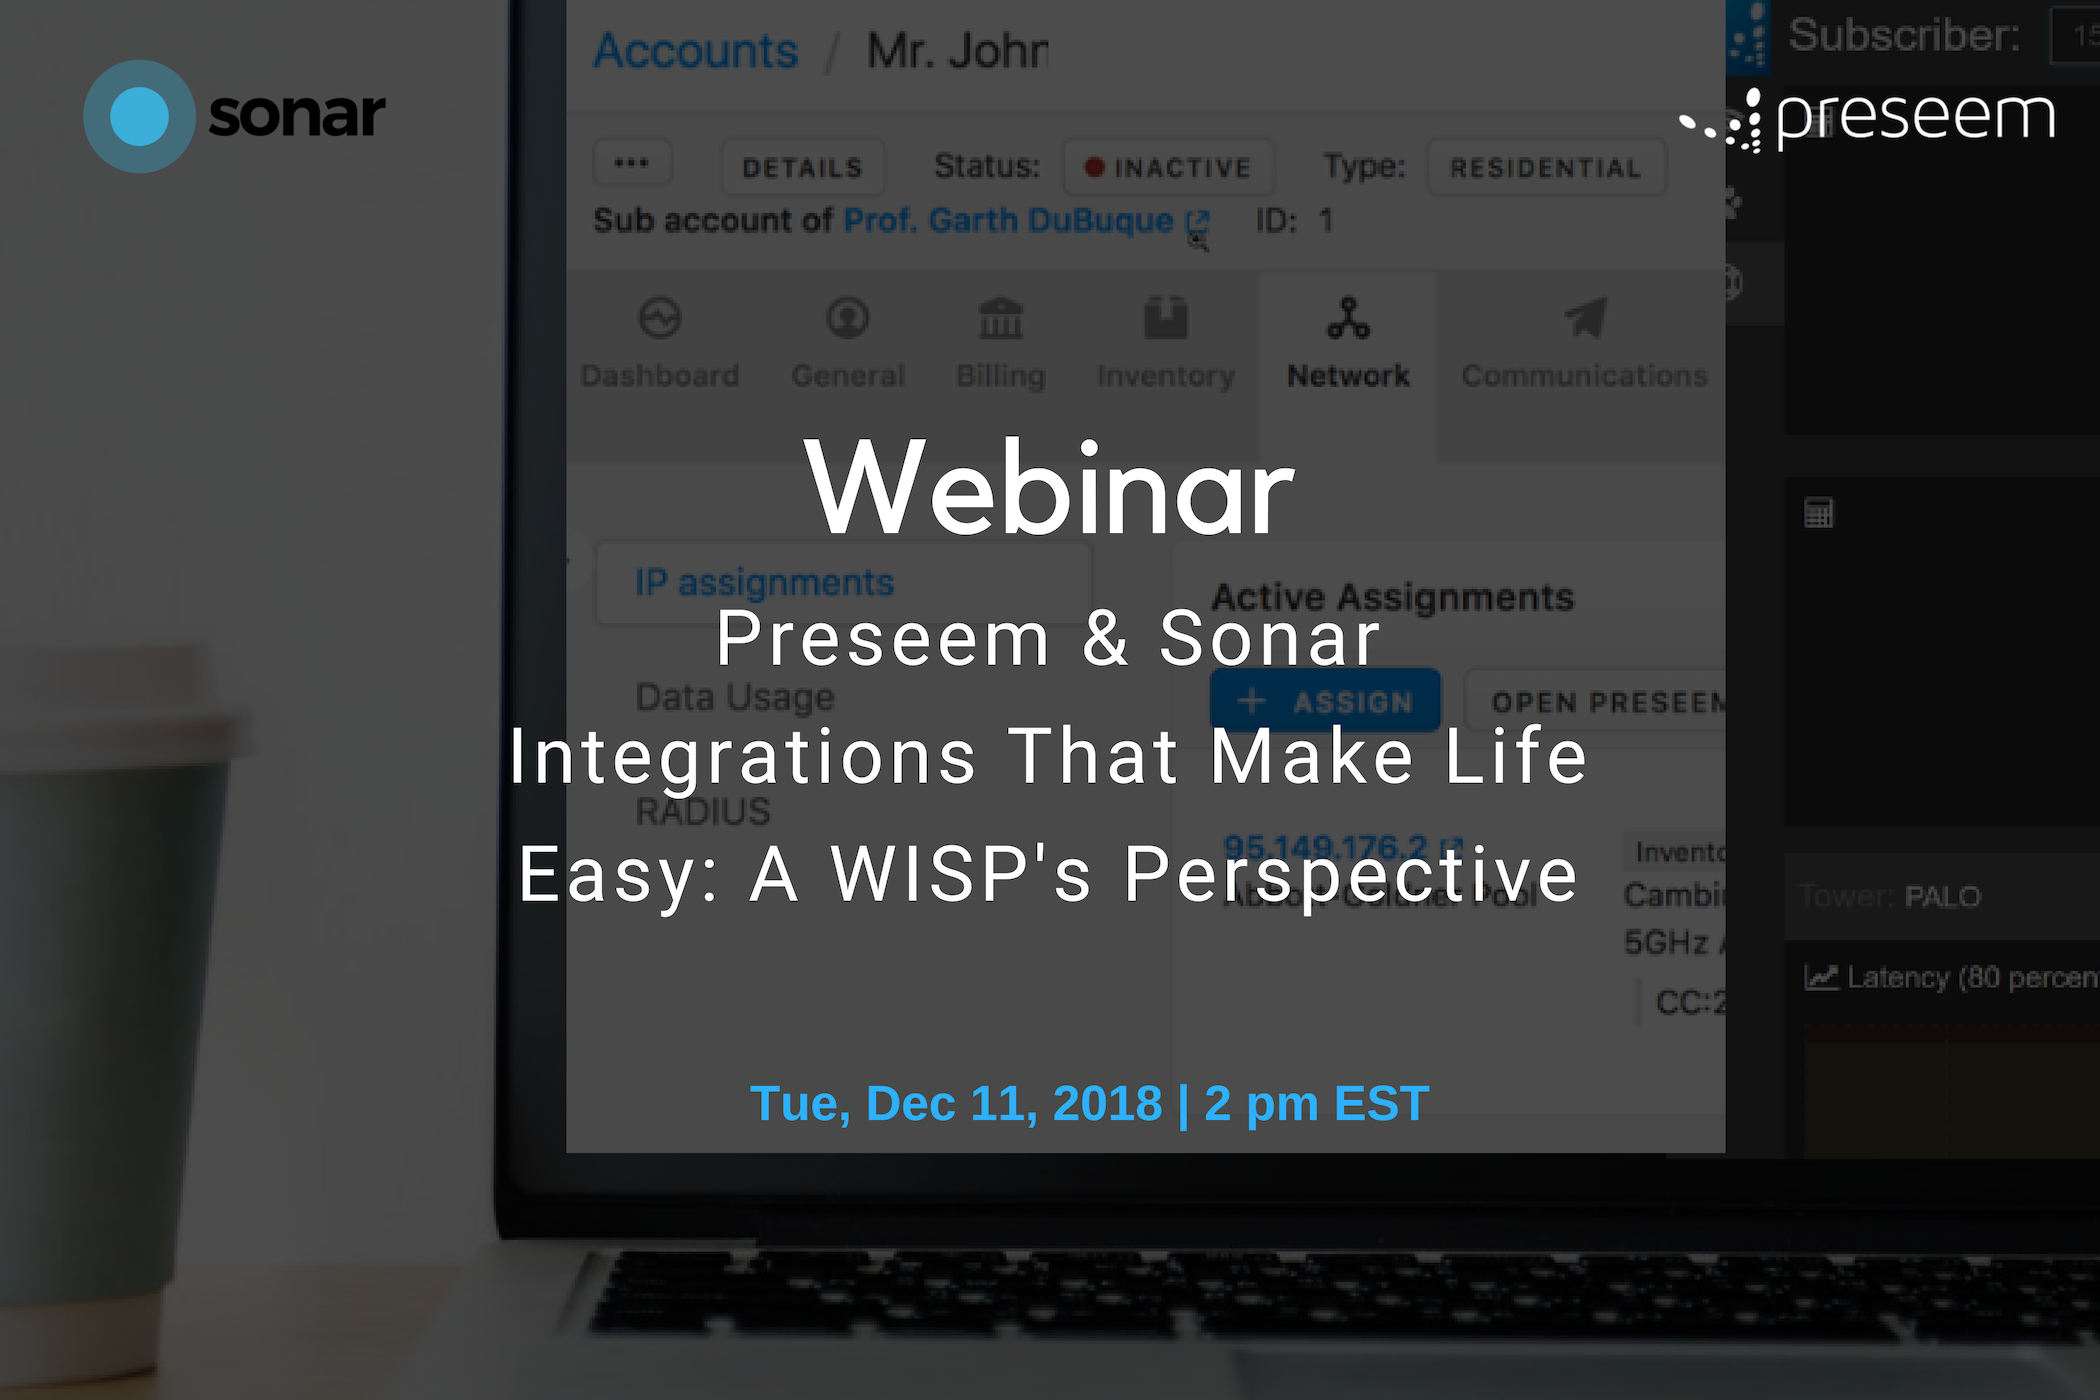 Preseem and Sonar Integrations That Make Life Easy: Webinar